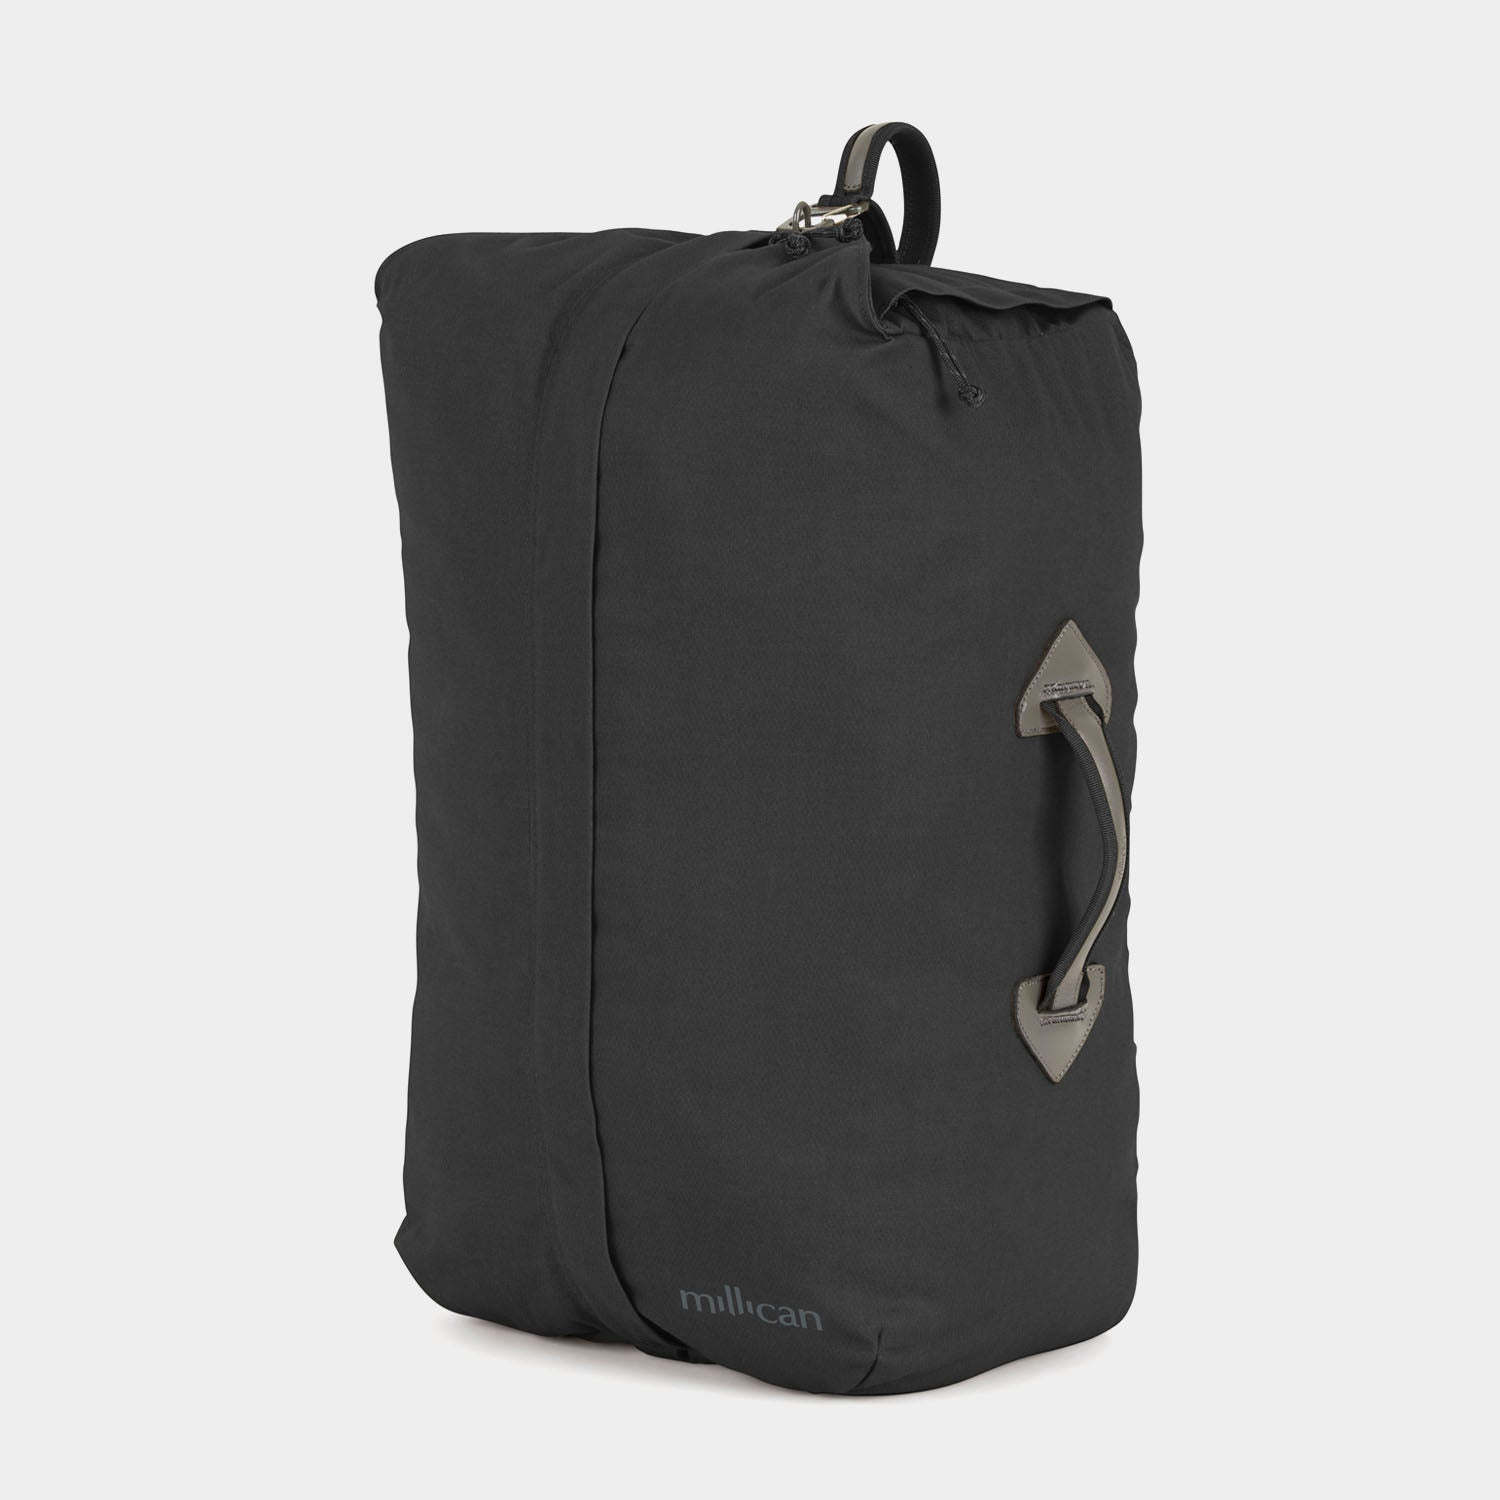 Millican 'Miles The Duffle Bag' 40L Graphite